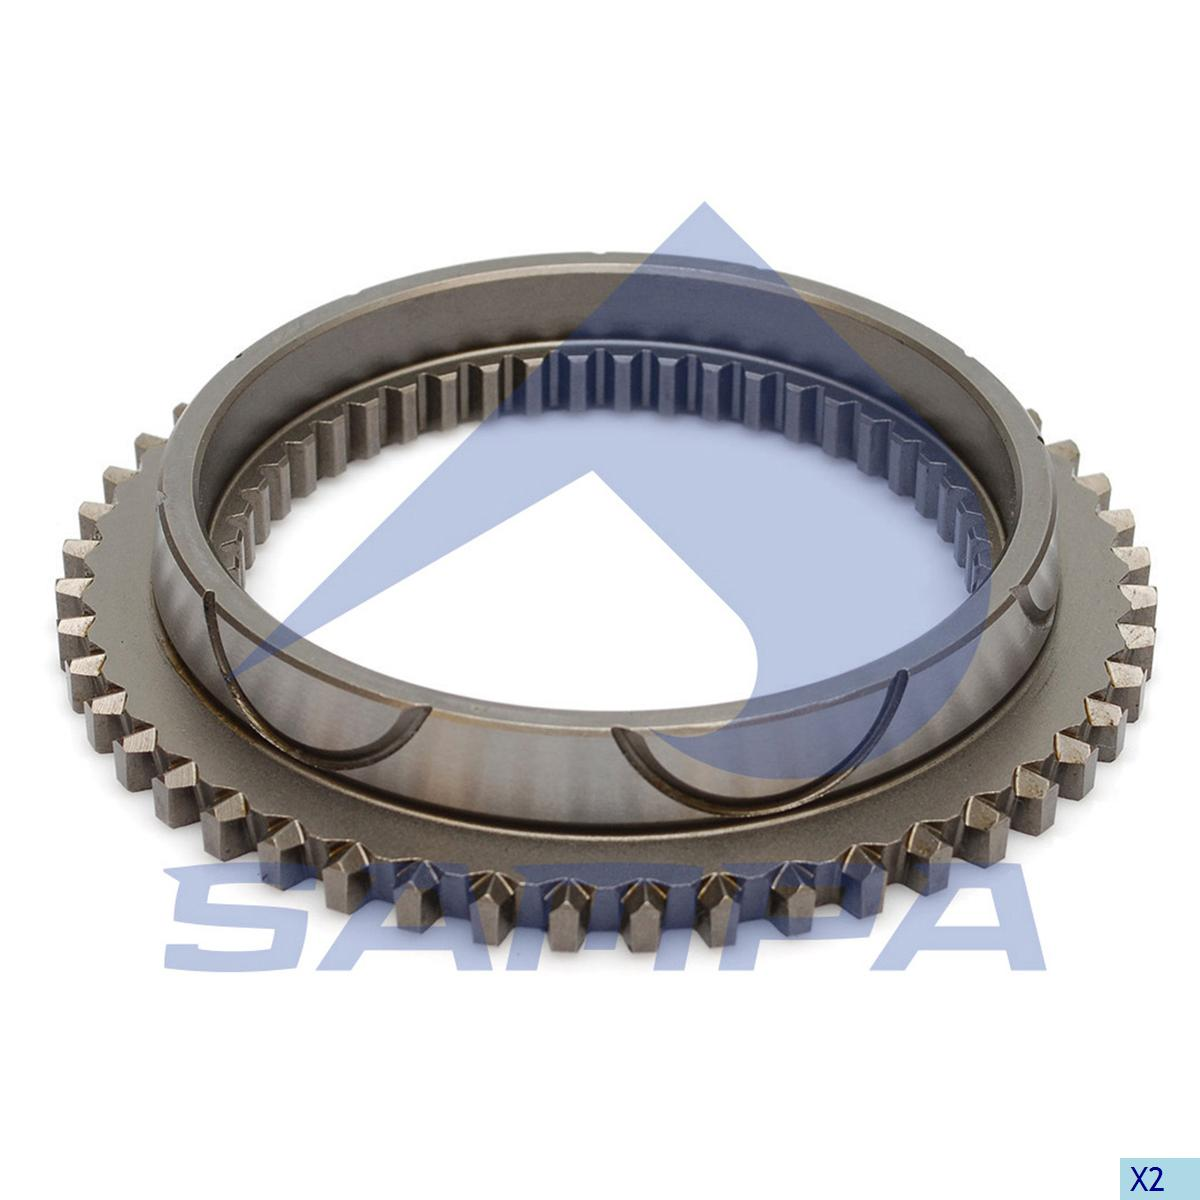 Synchronizing Cone, Input Shaft, Man, Gear Box